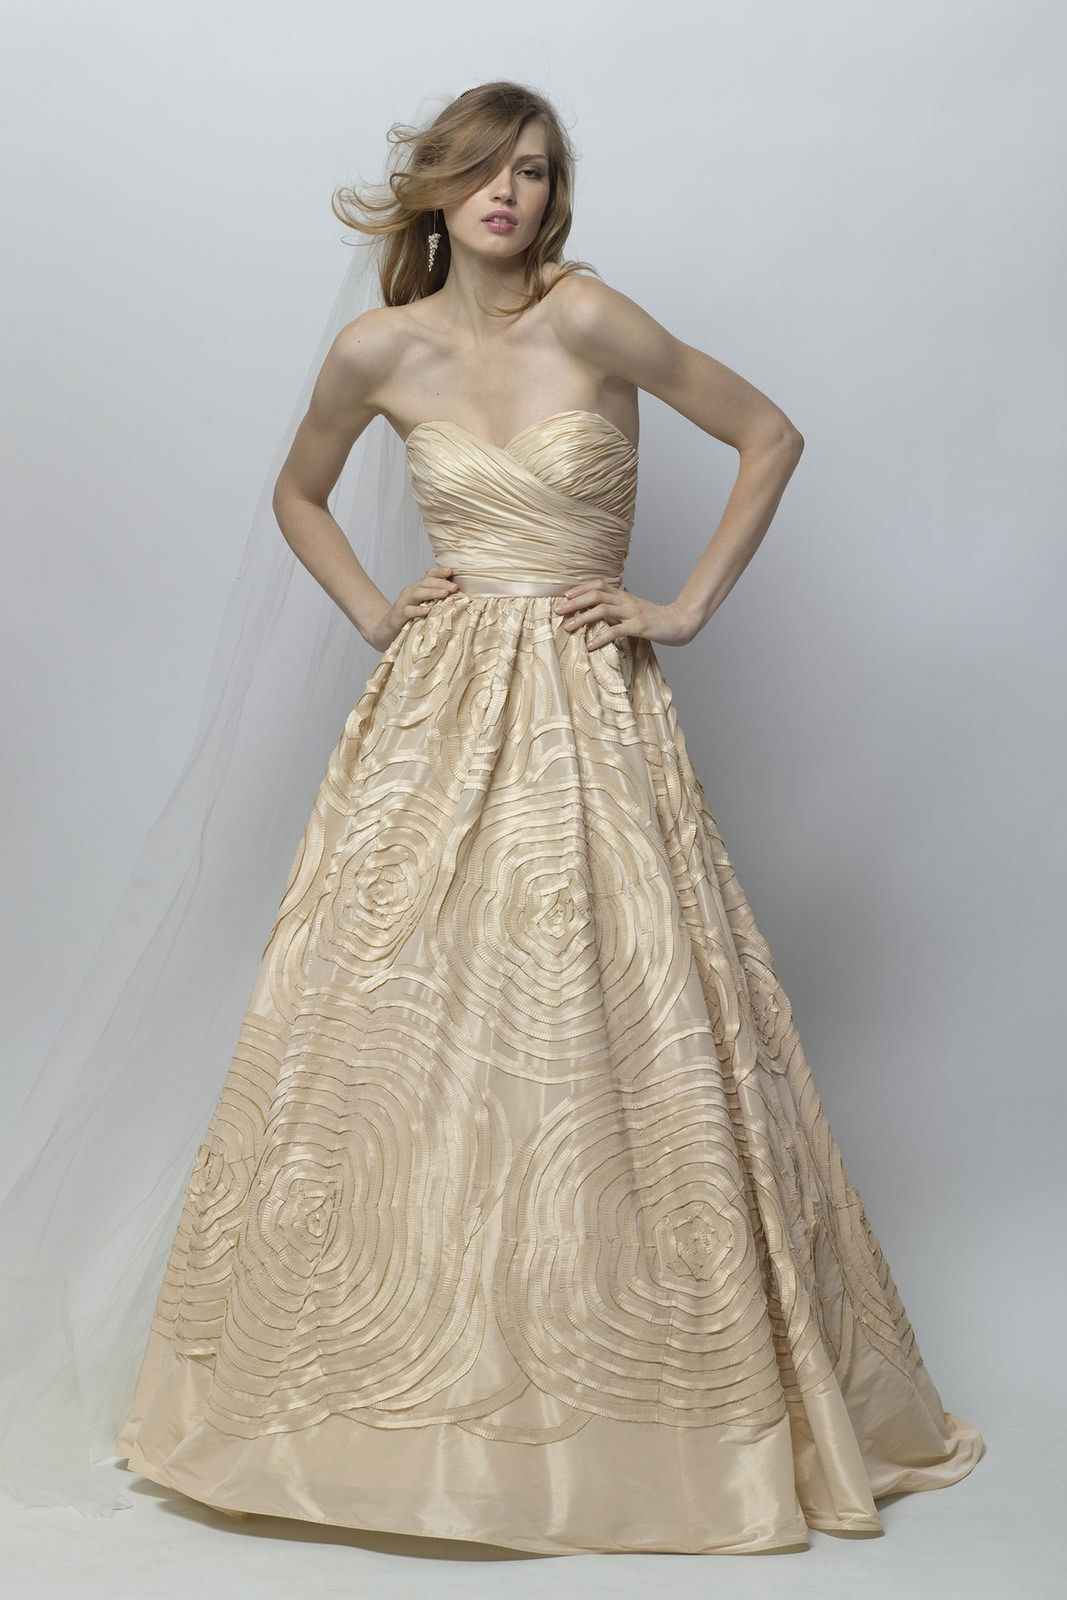 Champagne colored wedding dress   Champagne wedding dresses that brings with it a sense of